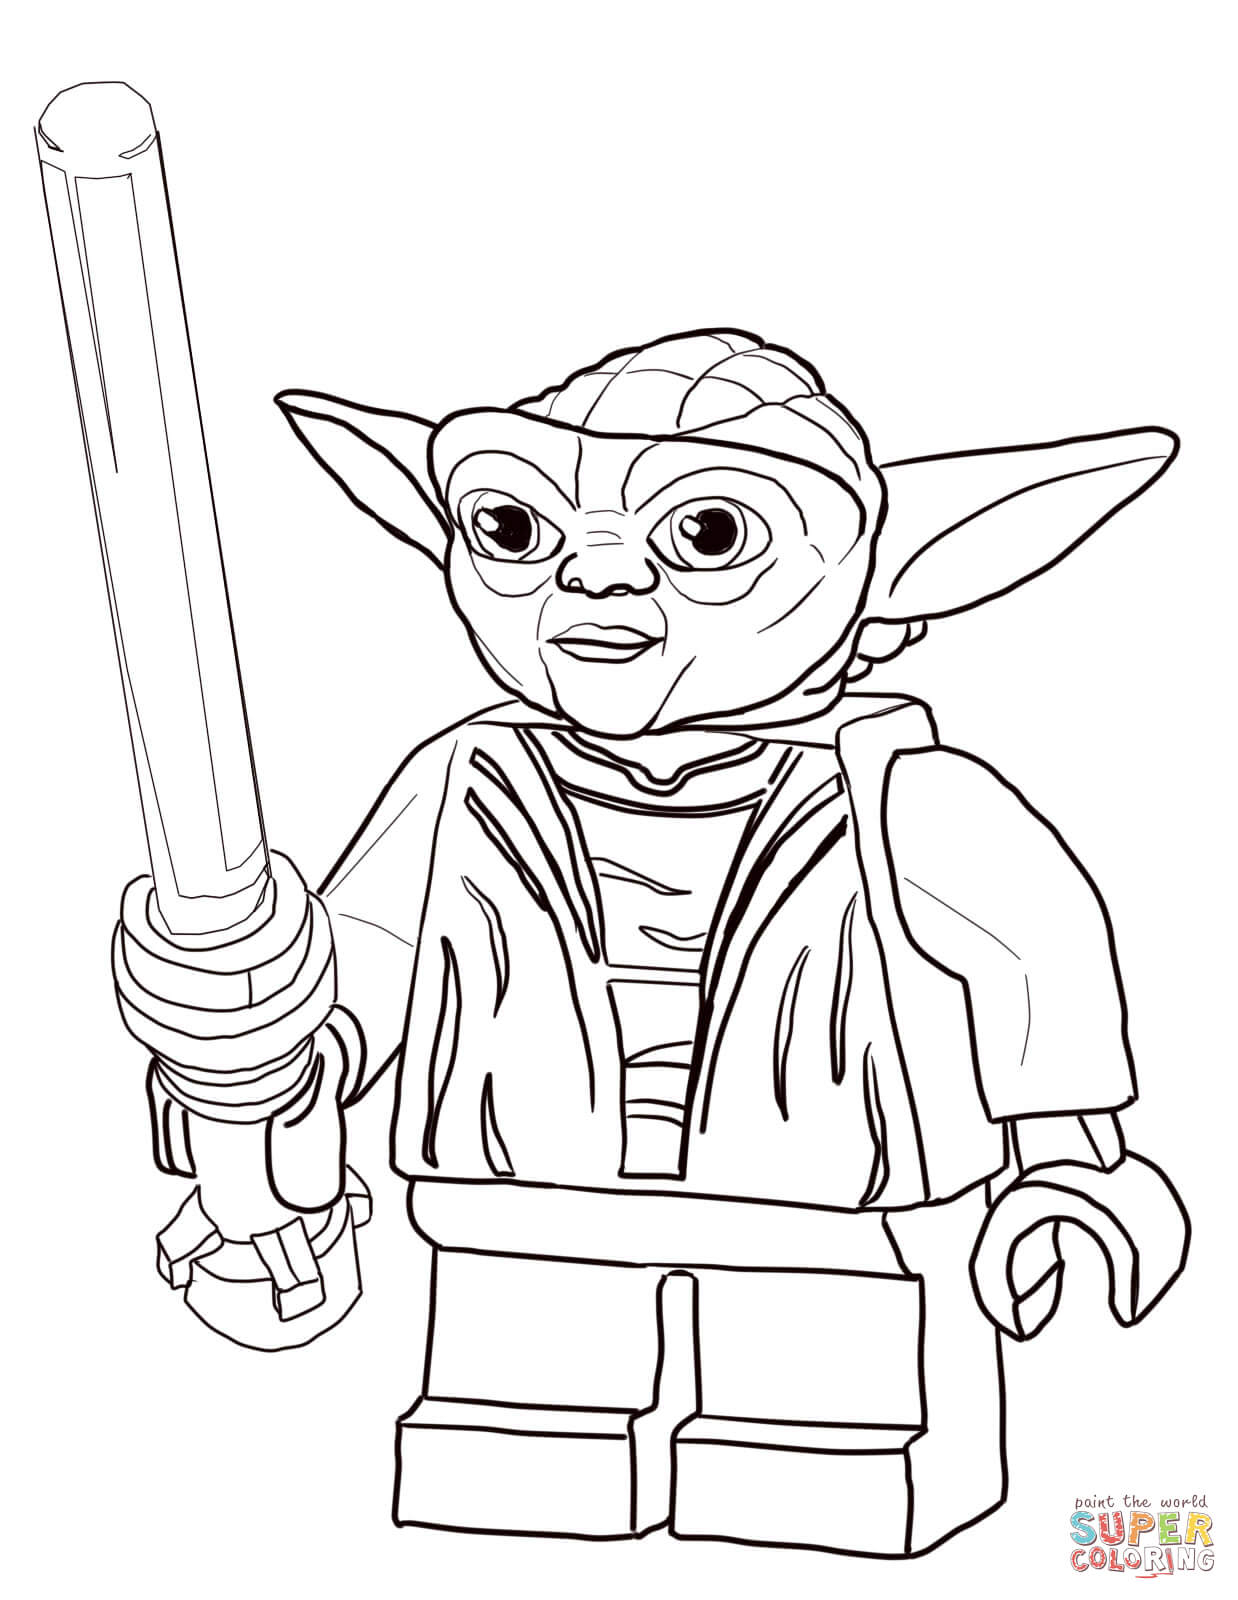 Lego Coloring Pages Star Wars Lego Star Wars Master Yoda Coloring Page Free Printable Coloring Pages